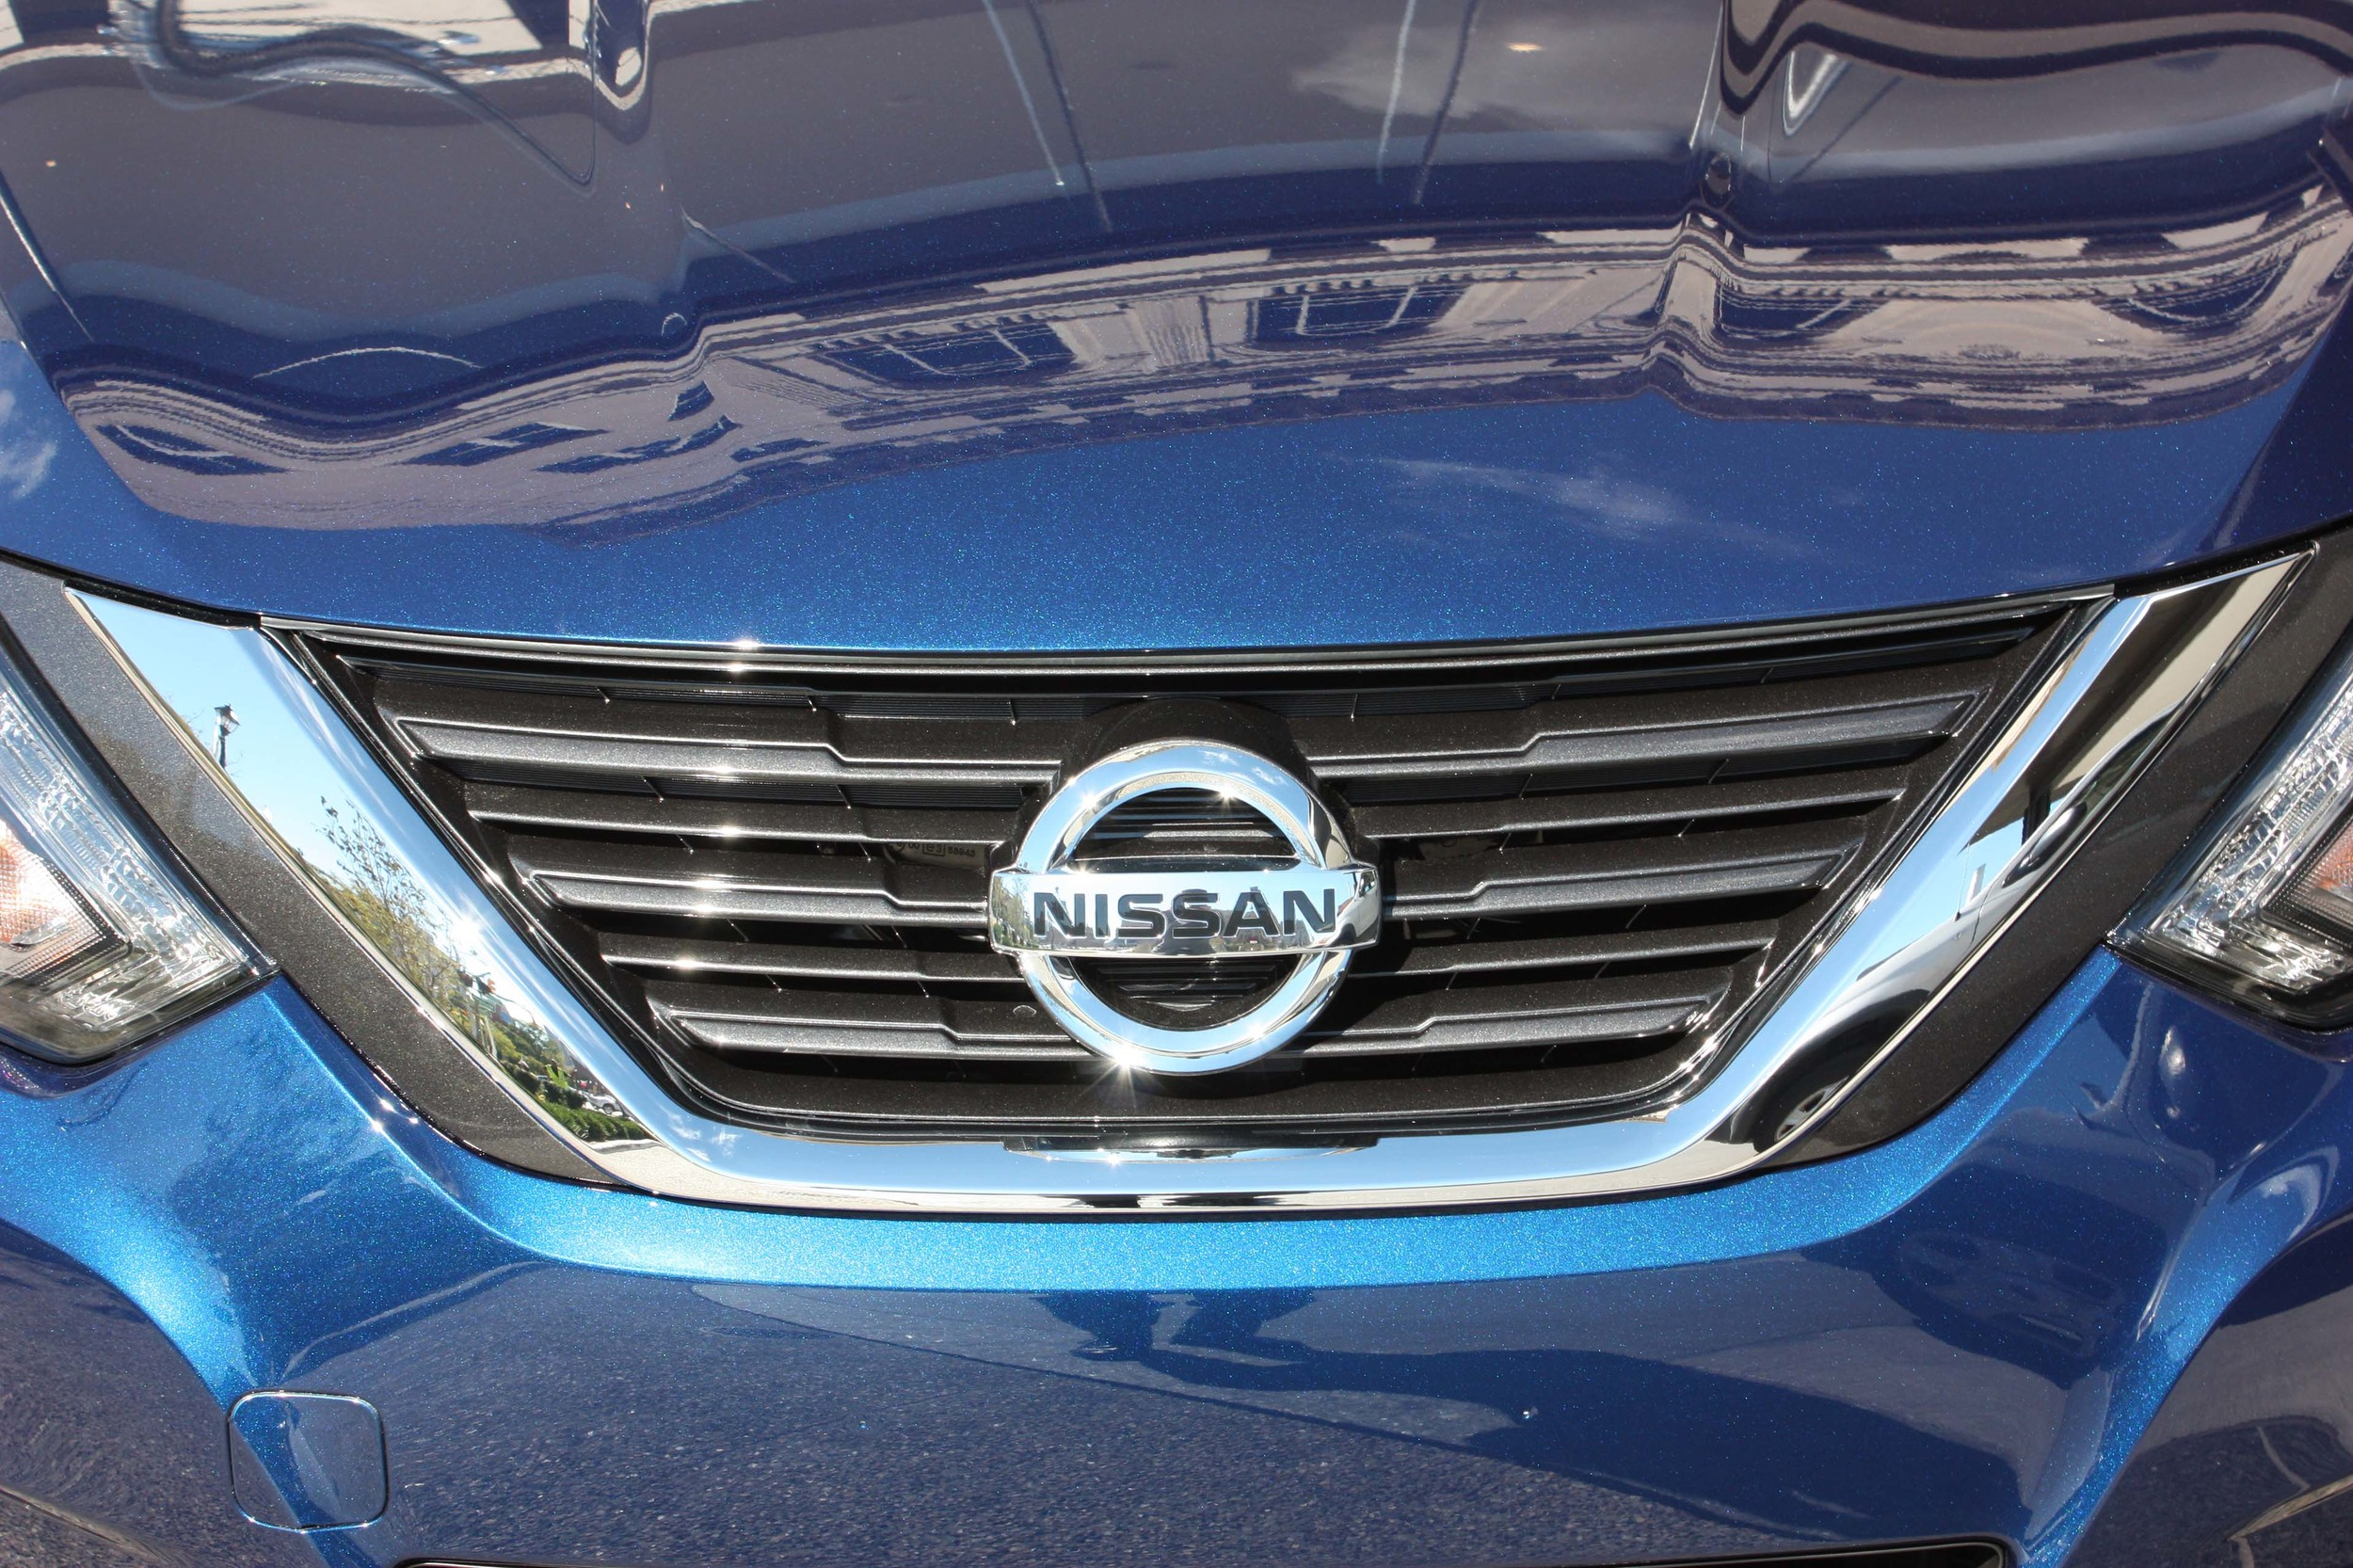 2016 Nissan Altima Exterior Grille (View 14 of 20)